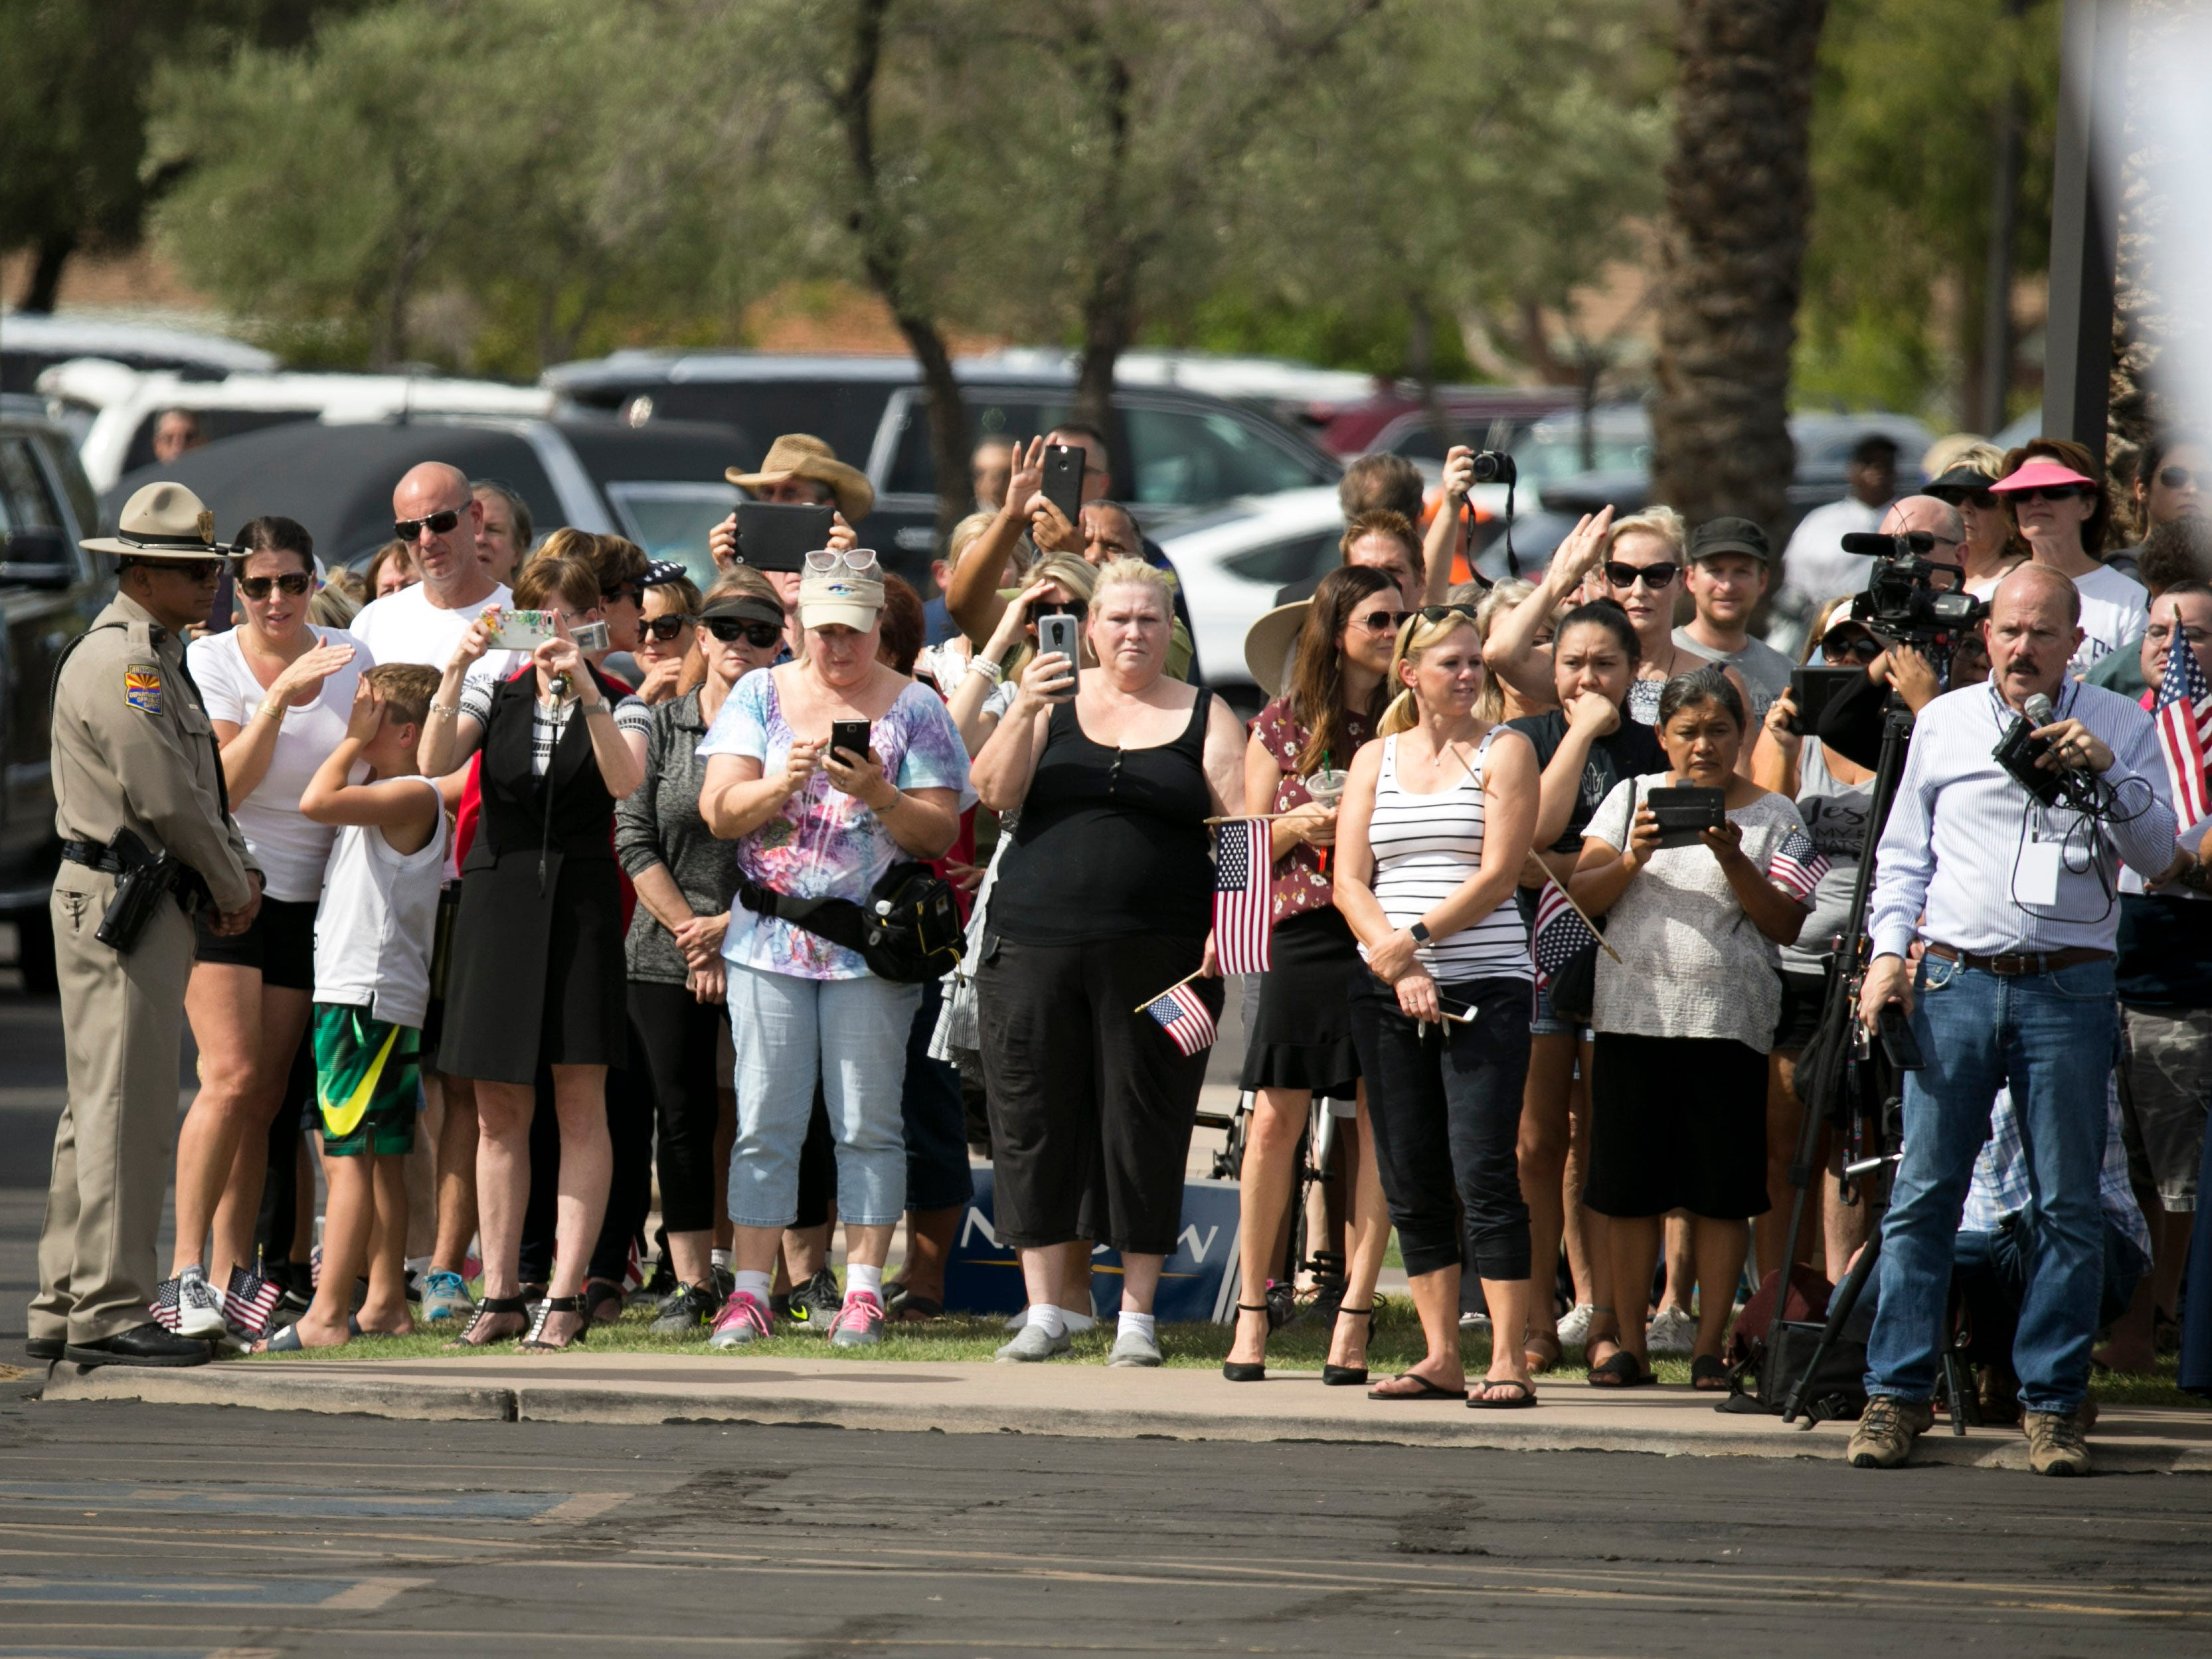 People wait for the motorcade to arrive before a memorial service for Sen. John McCain at North Phoenix Baptist Church in Phoenix, Aug. 30, 2018.